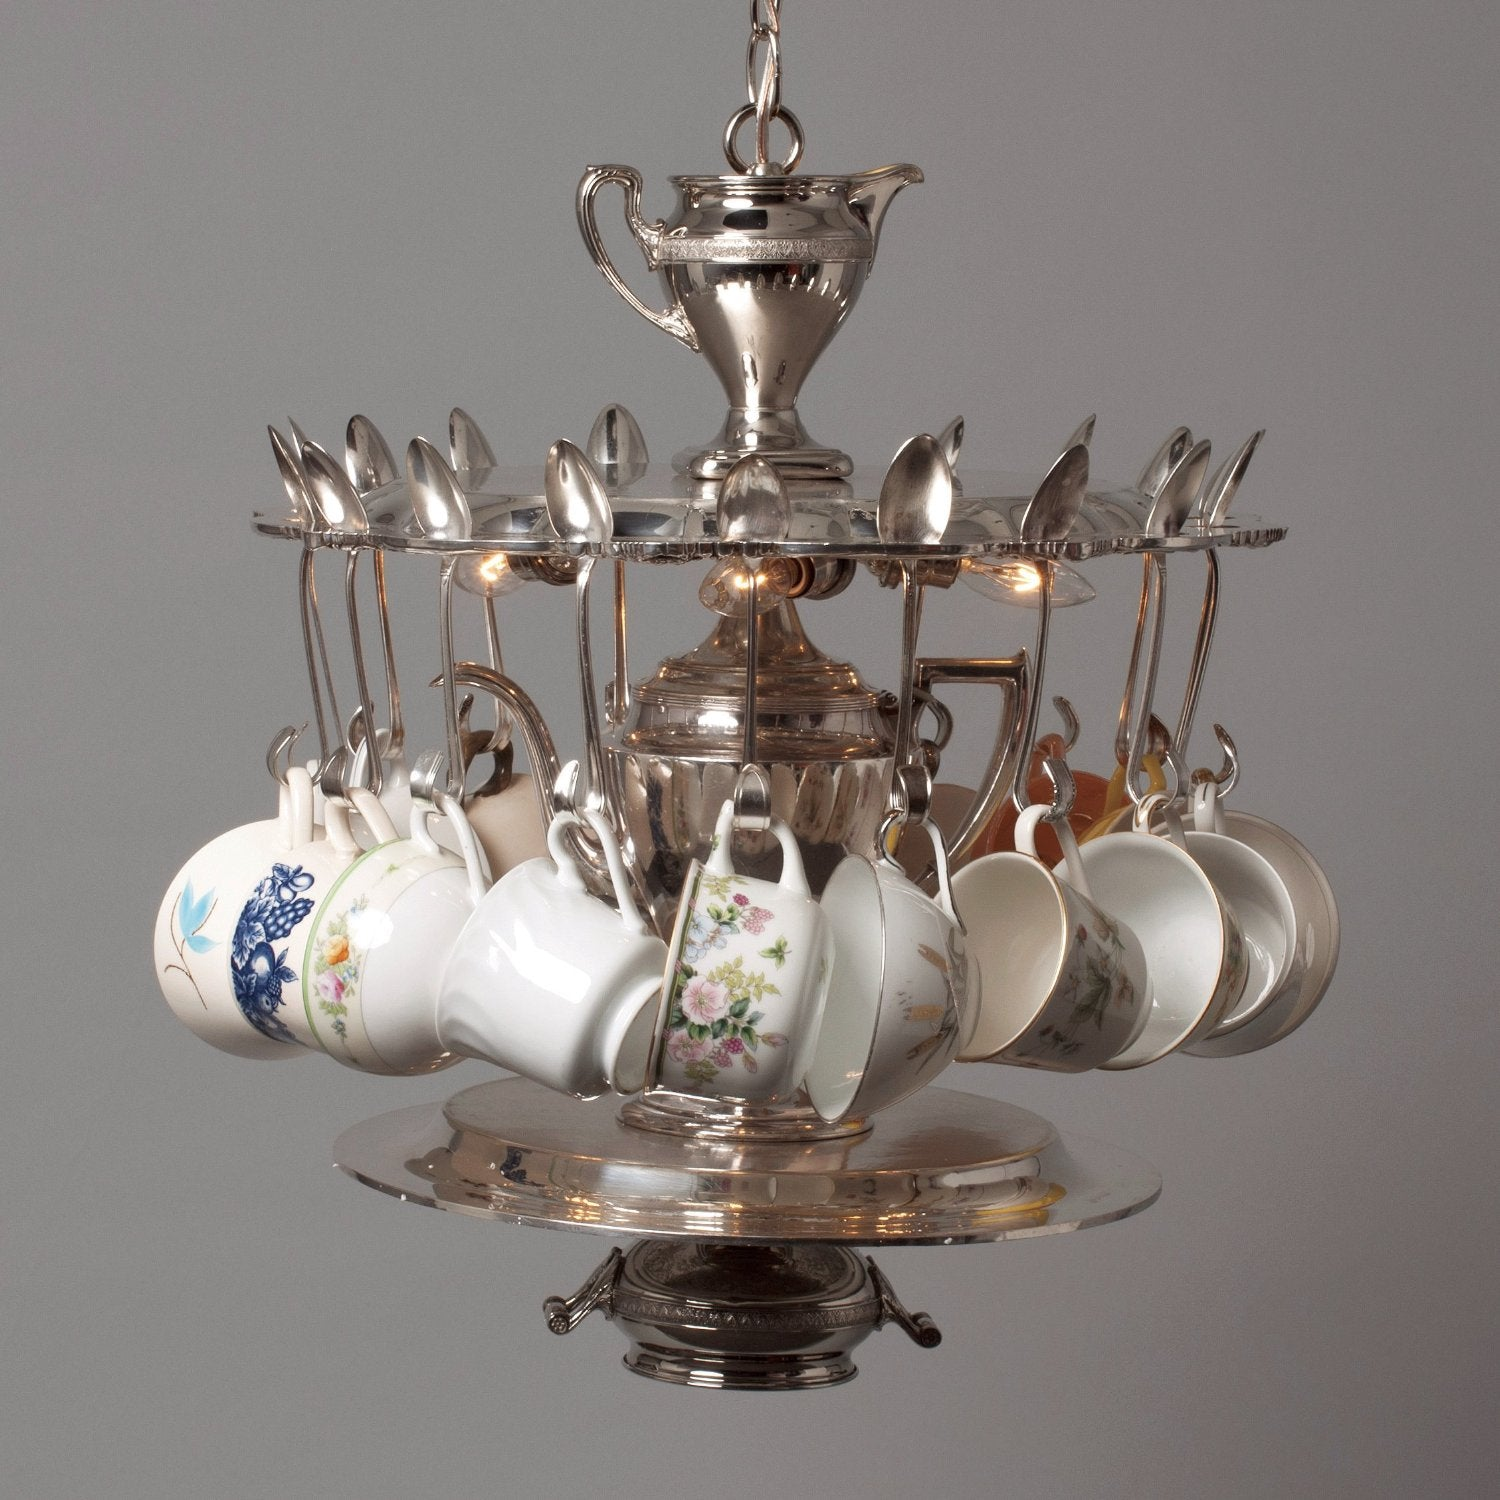 Hester & Cook Tea Party Silver Light with Vintage Tea Cups - Putti Canada